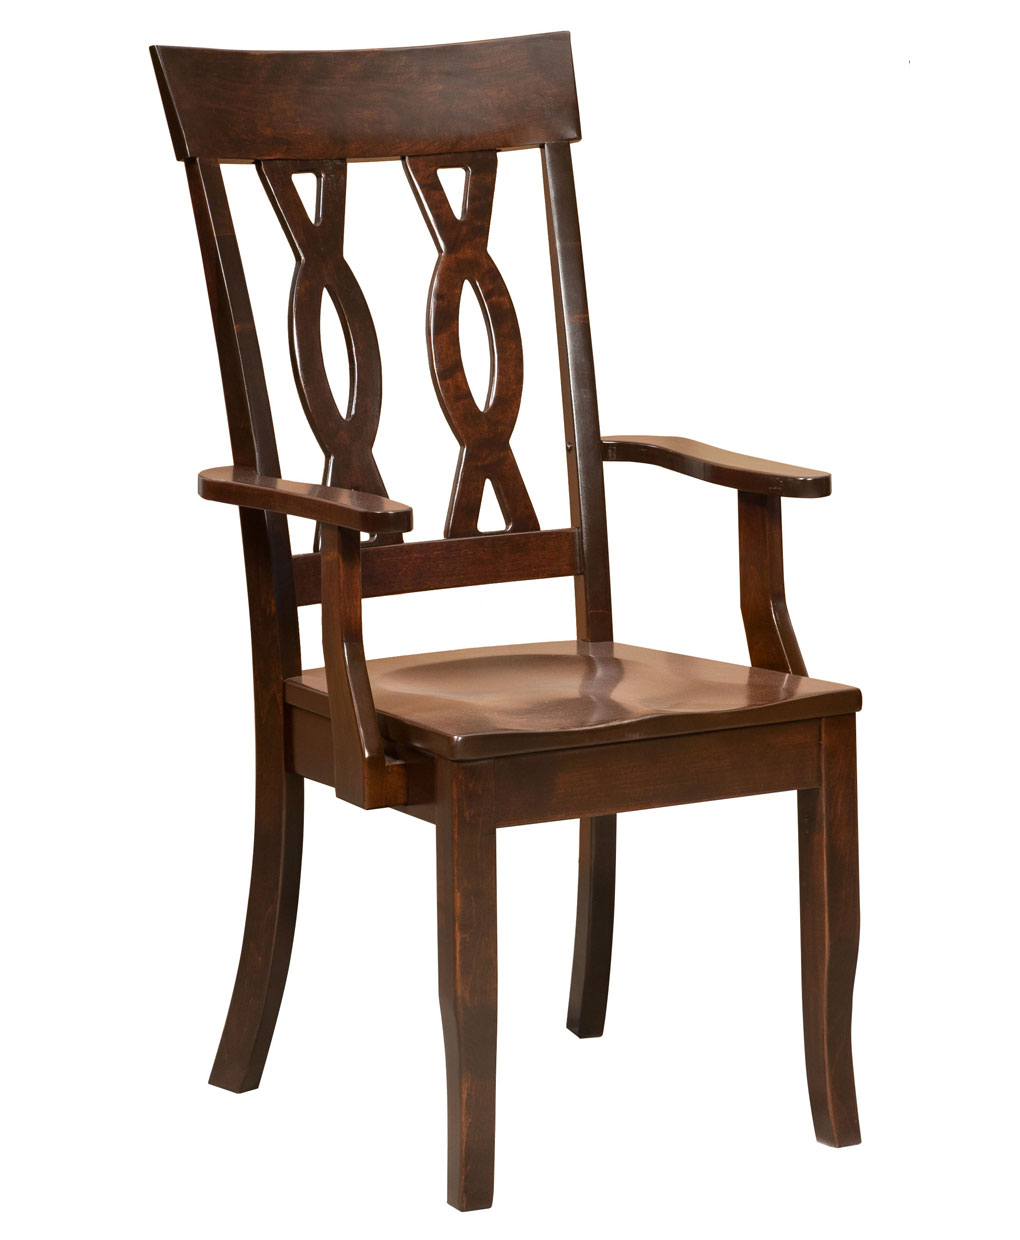 Gallery pictures for good quality dining chairs carson armchair amish - Carson amish dining chair arm